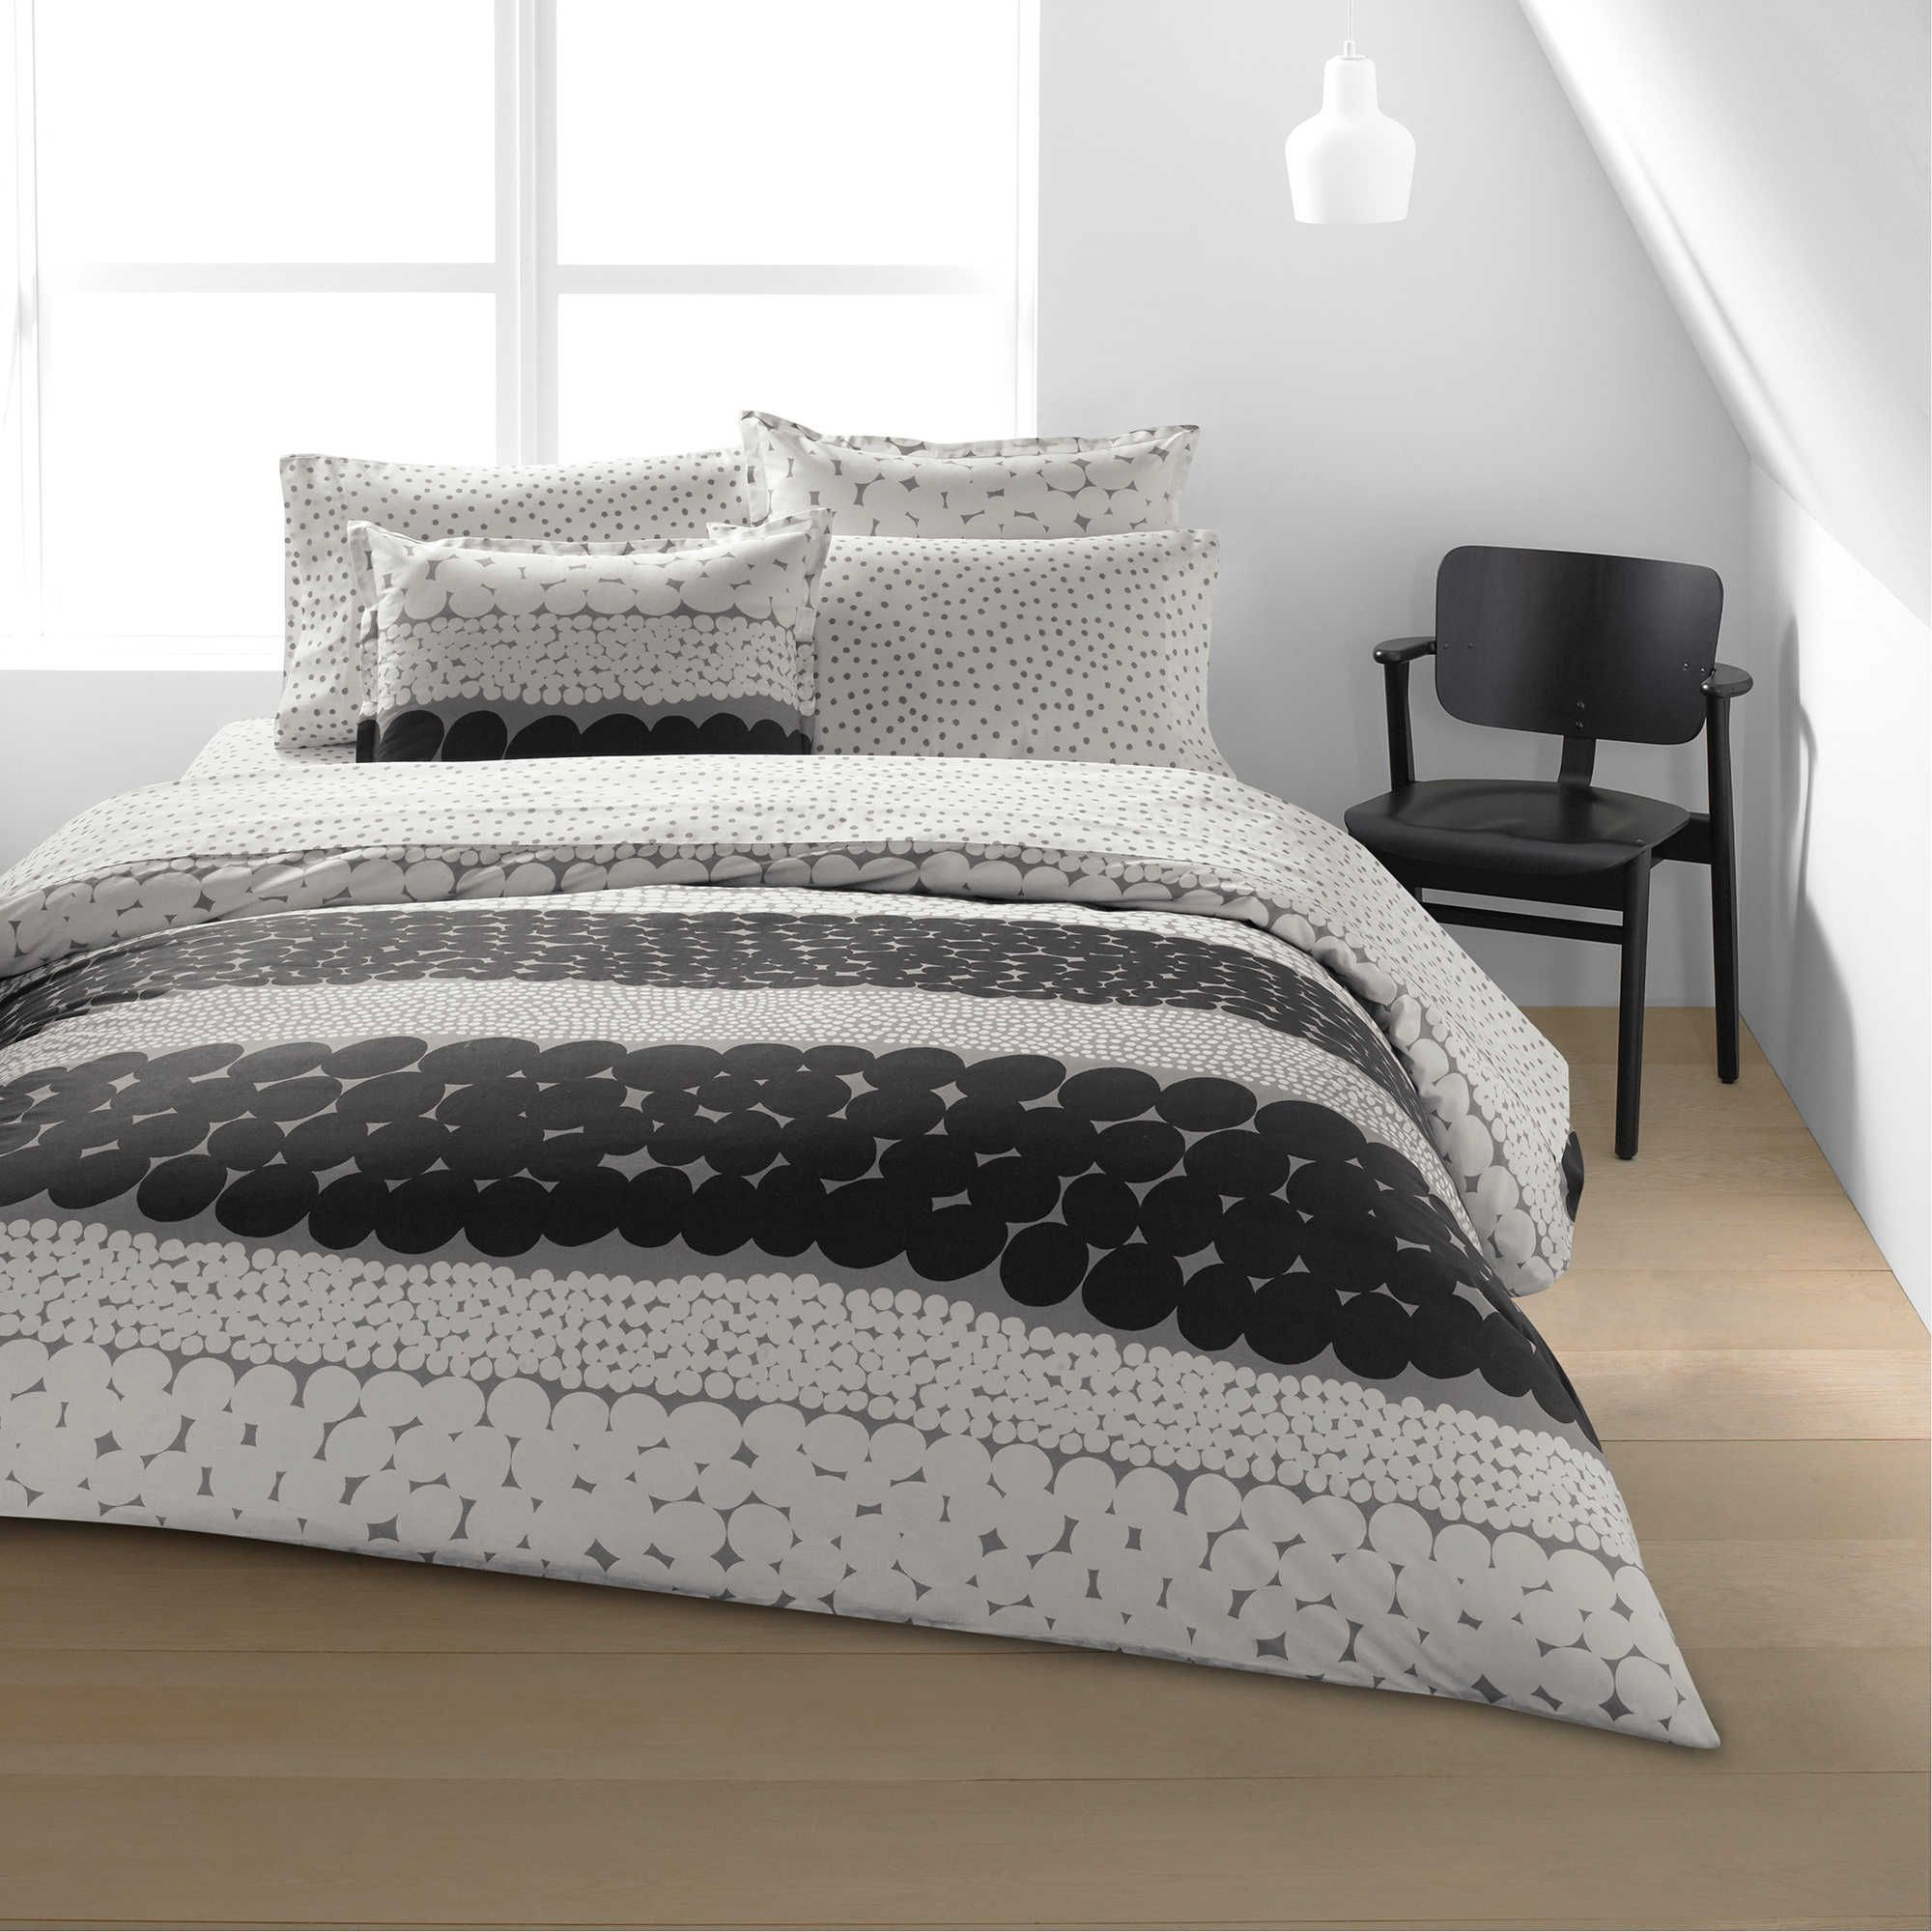 urban gray outfitters duvets teen soft info king full page cheap queen cover super white klein dillards of covers chevron calvin light and dark red zi home large bedding grey girl quilt sets teal double duvet size kohphiphi black yellow doona set green